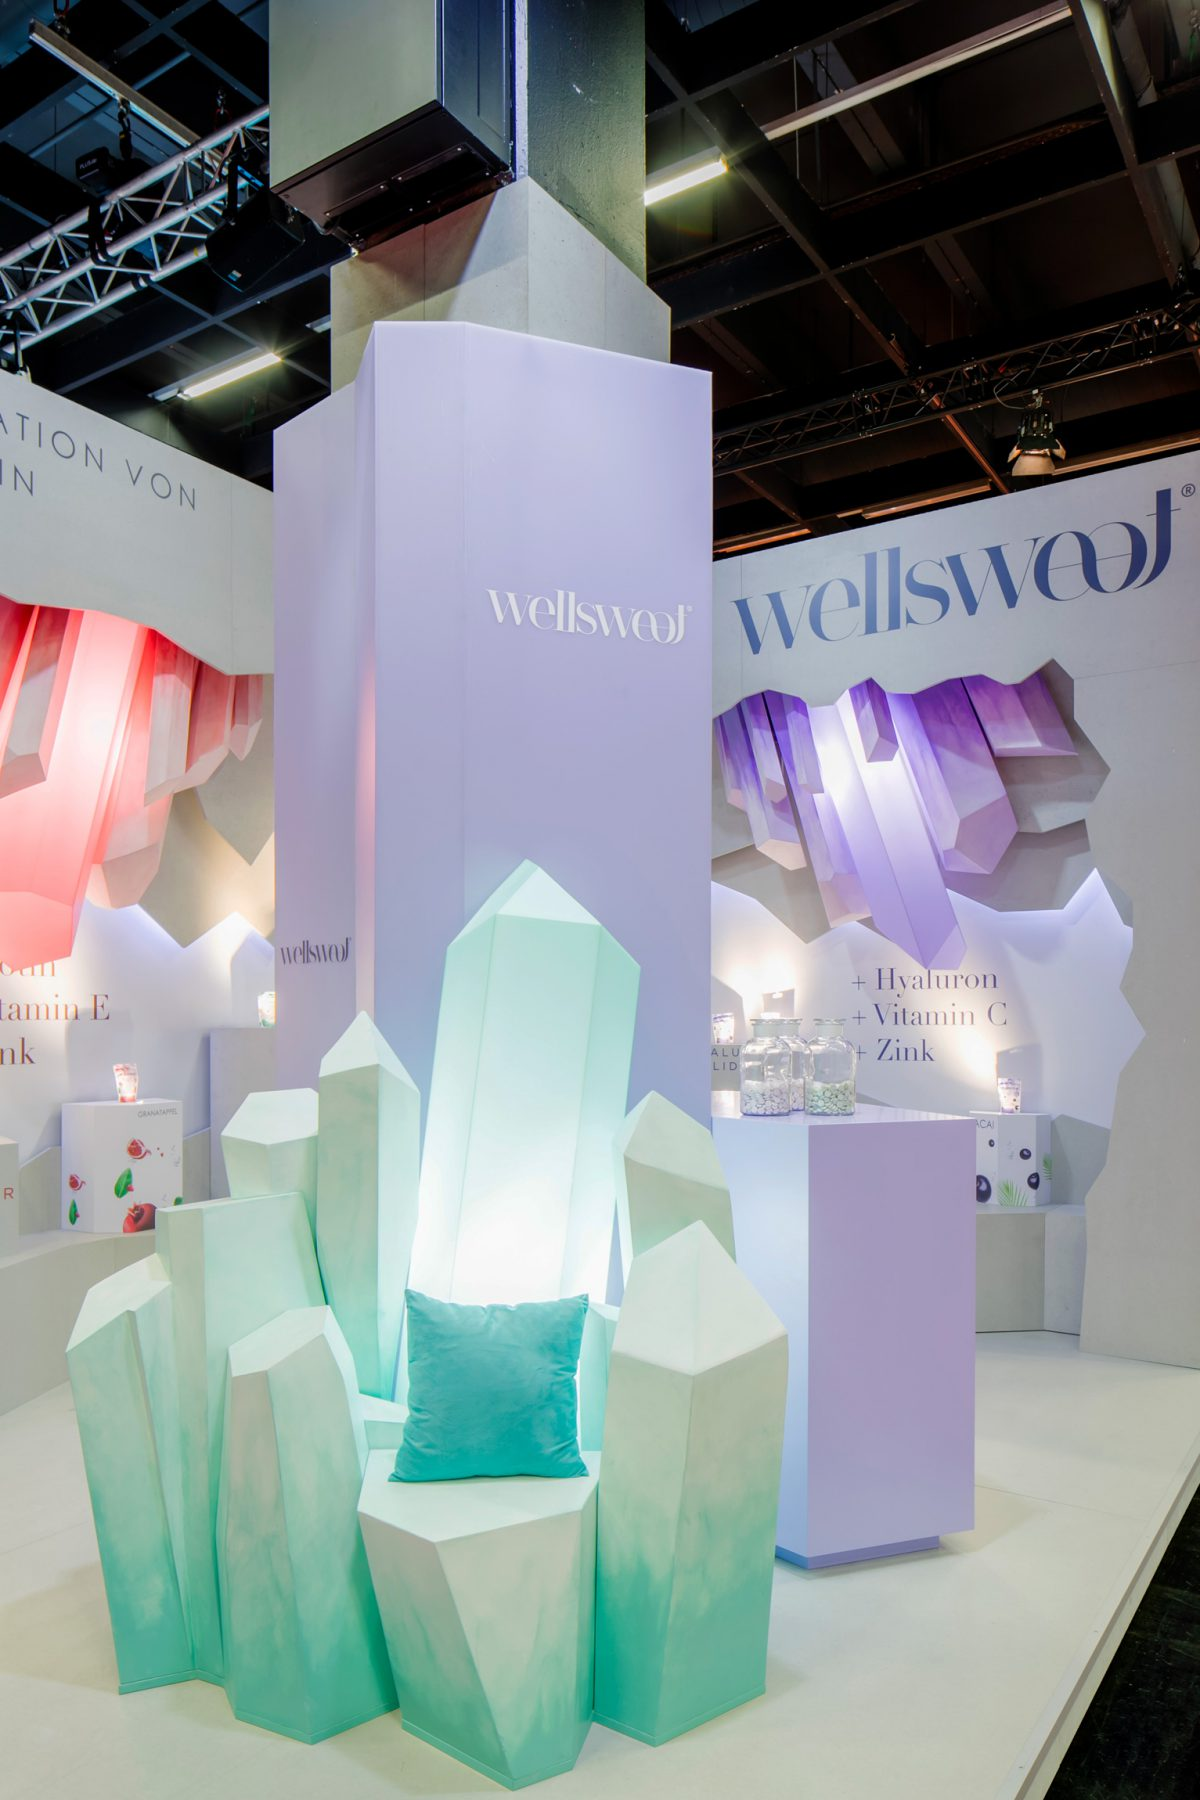 ISM Cologne 2020, International Sweet Expo, Design Stil Manipulation 2020, ISM 2020, Messestand Design, Messe Design, Messebau Köln, Wellsweet, Trade Show Design, Trade Show Booth Design,